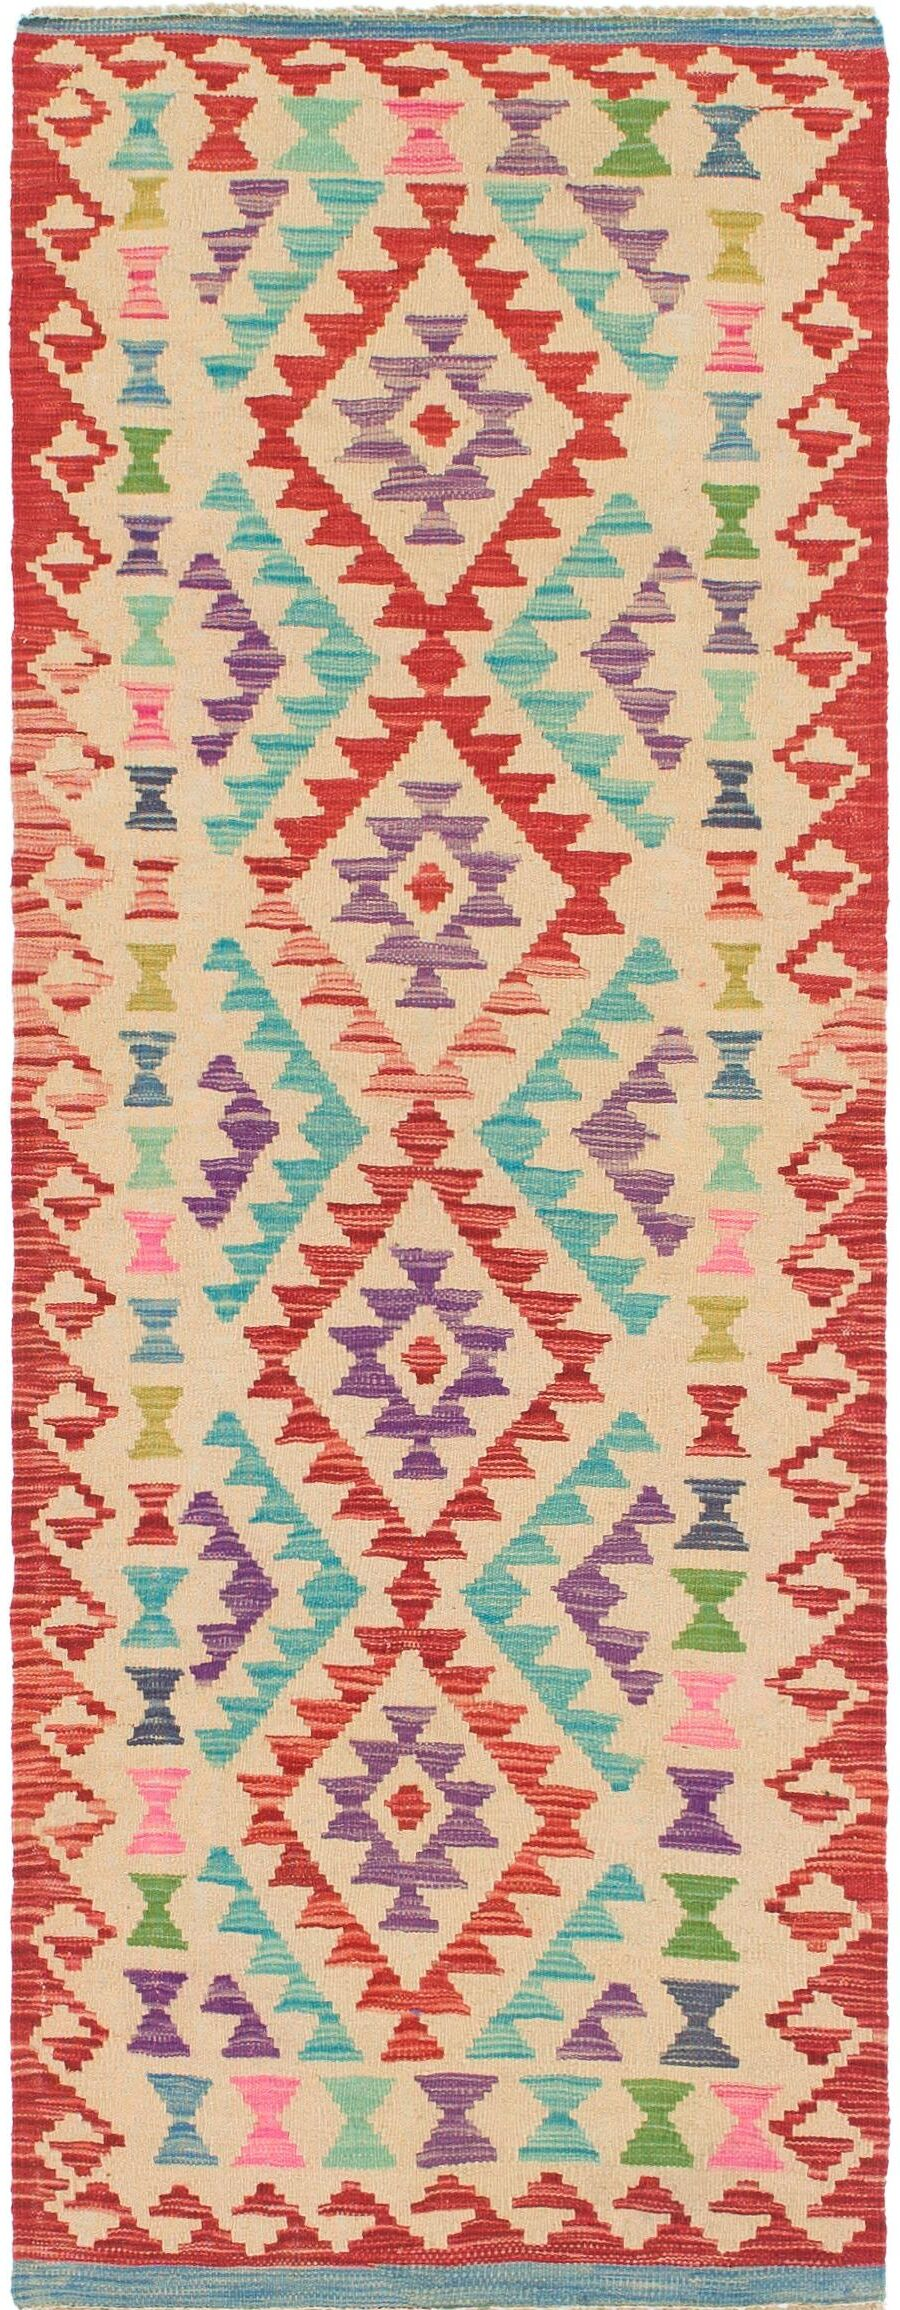 One-of-a-Kind Lorain Hand-Knotted Wool  2'5